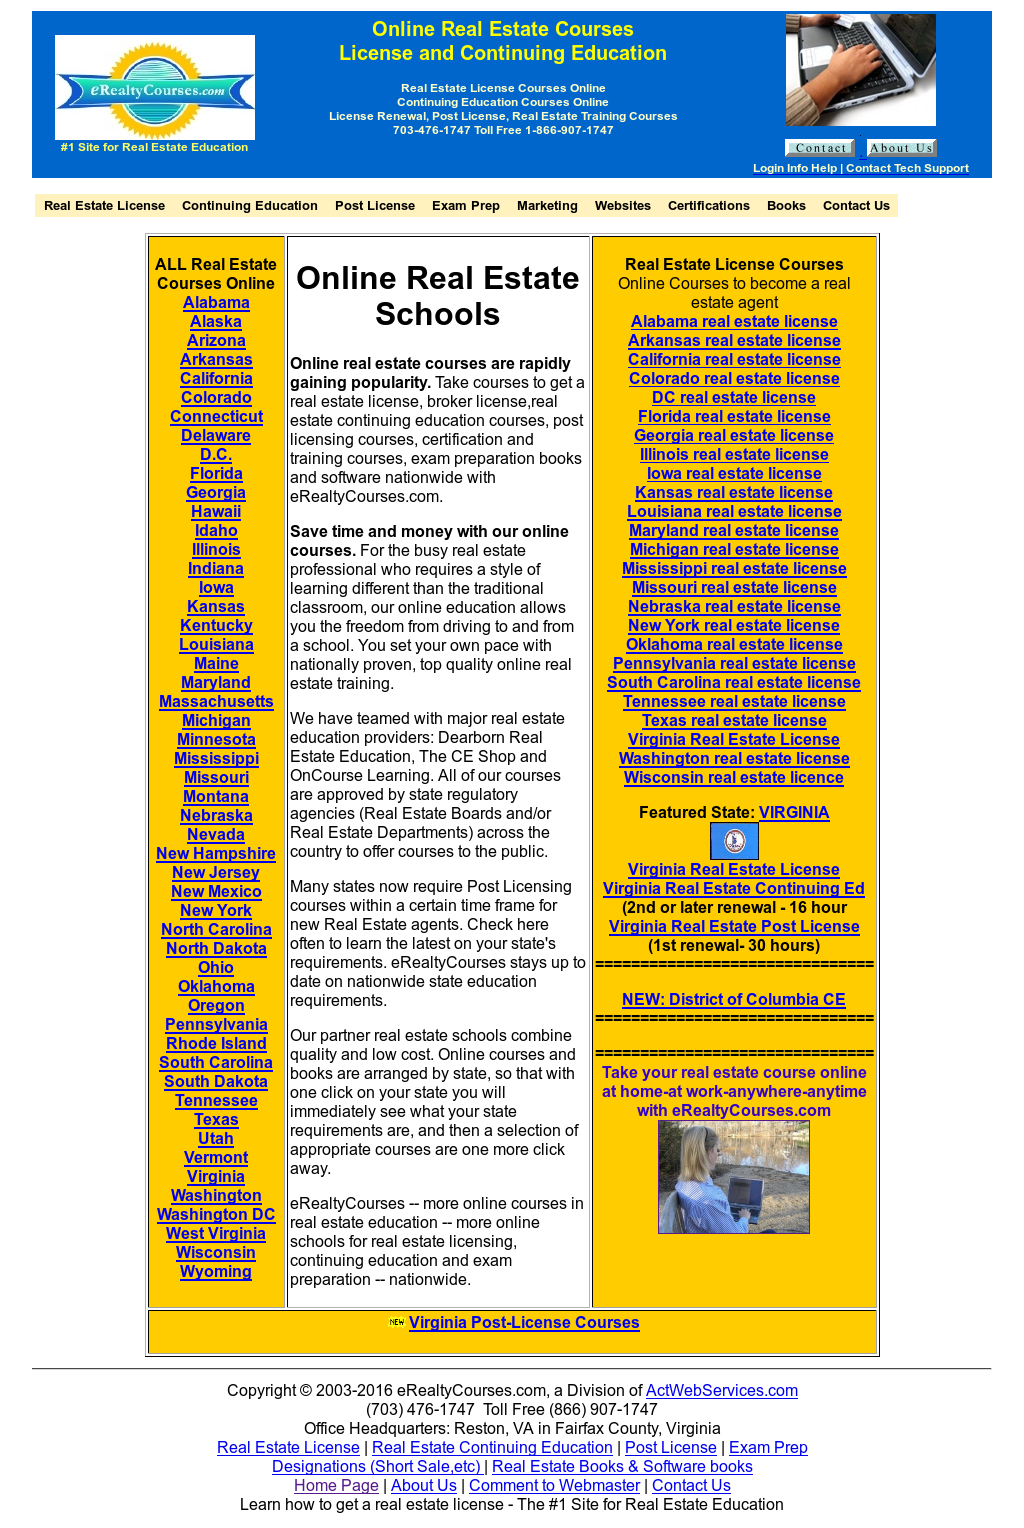 Online Real Estate Courses Competitors, Revenue and